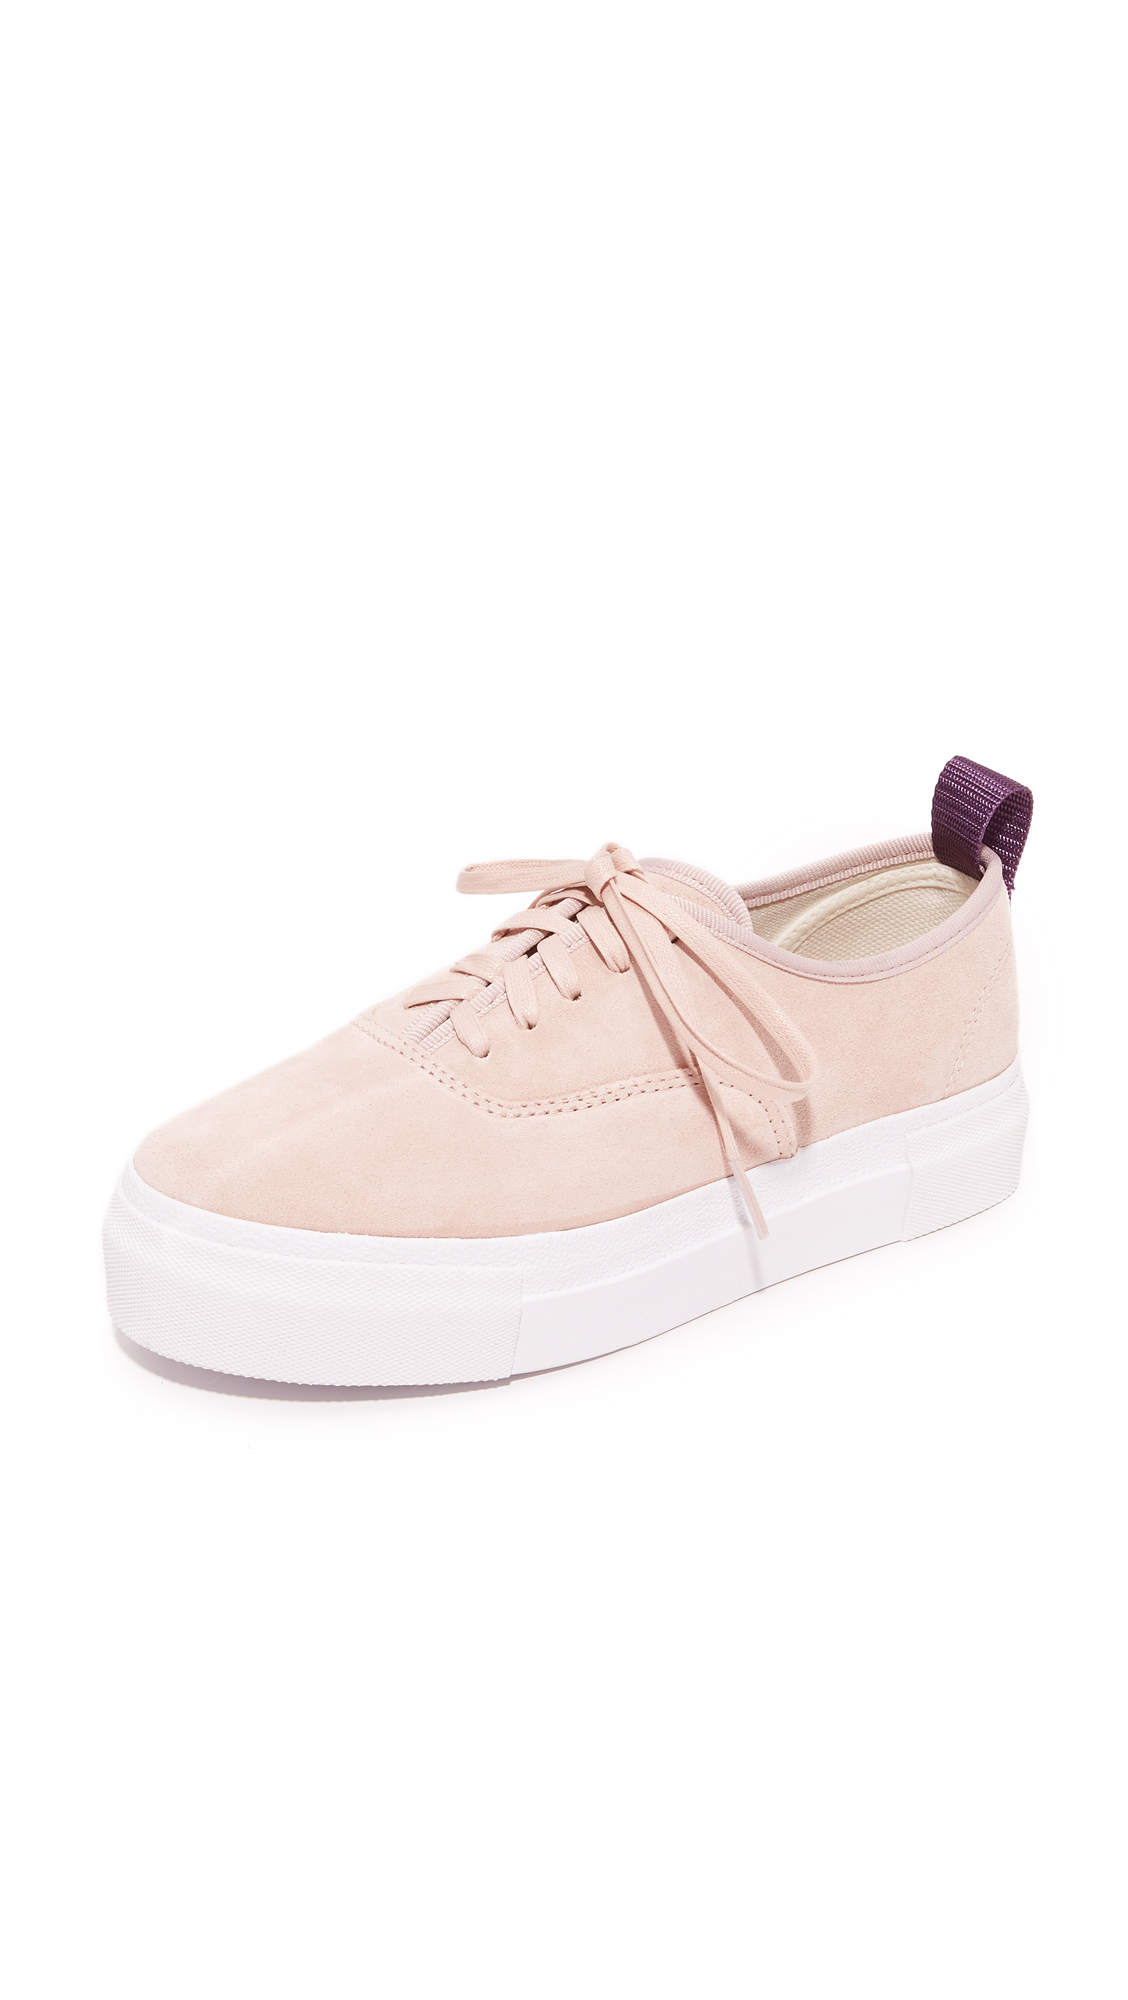 Eytys Mother Suede Sneakers - Powder Pink